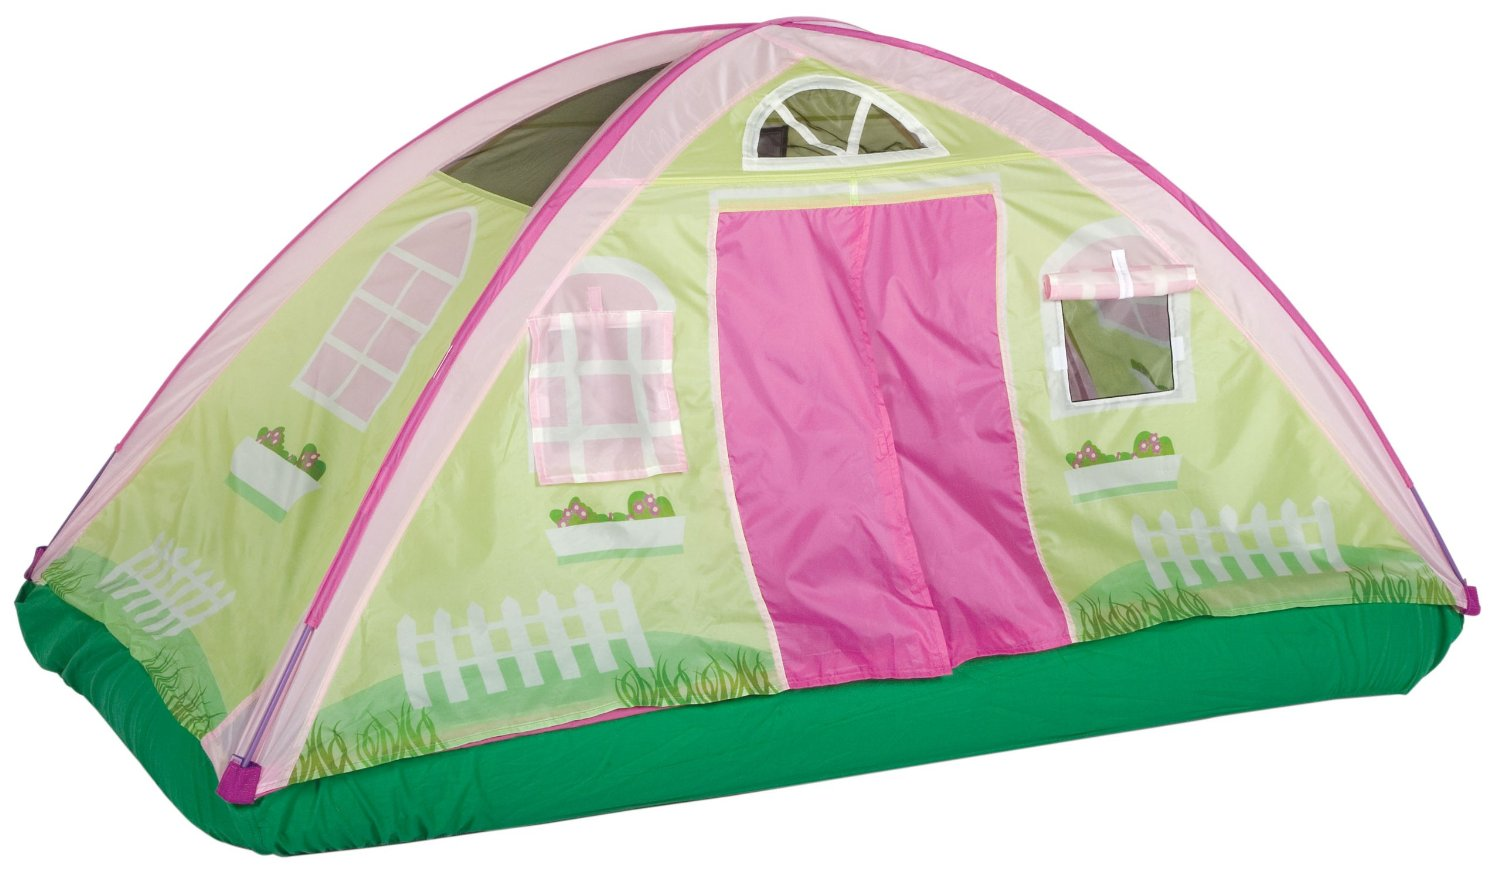 Pacific Play Tents Cottage Bed Tent Only $29.99 (Reg. $64